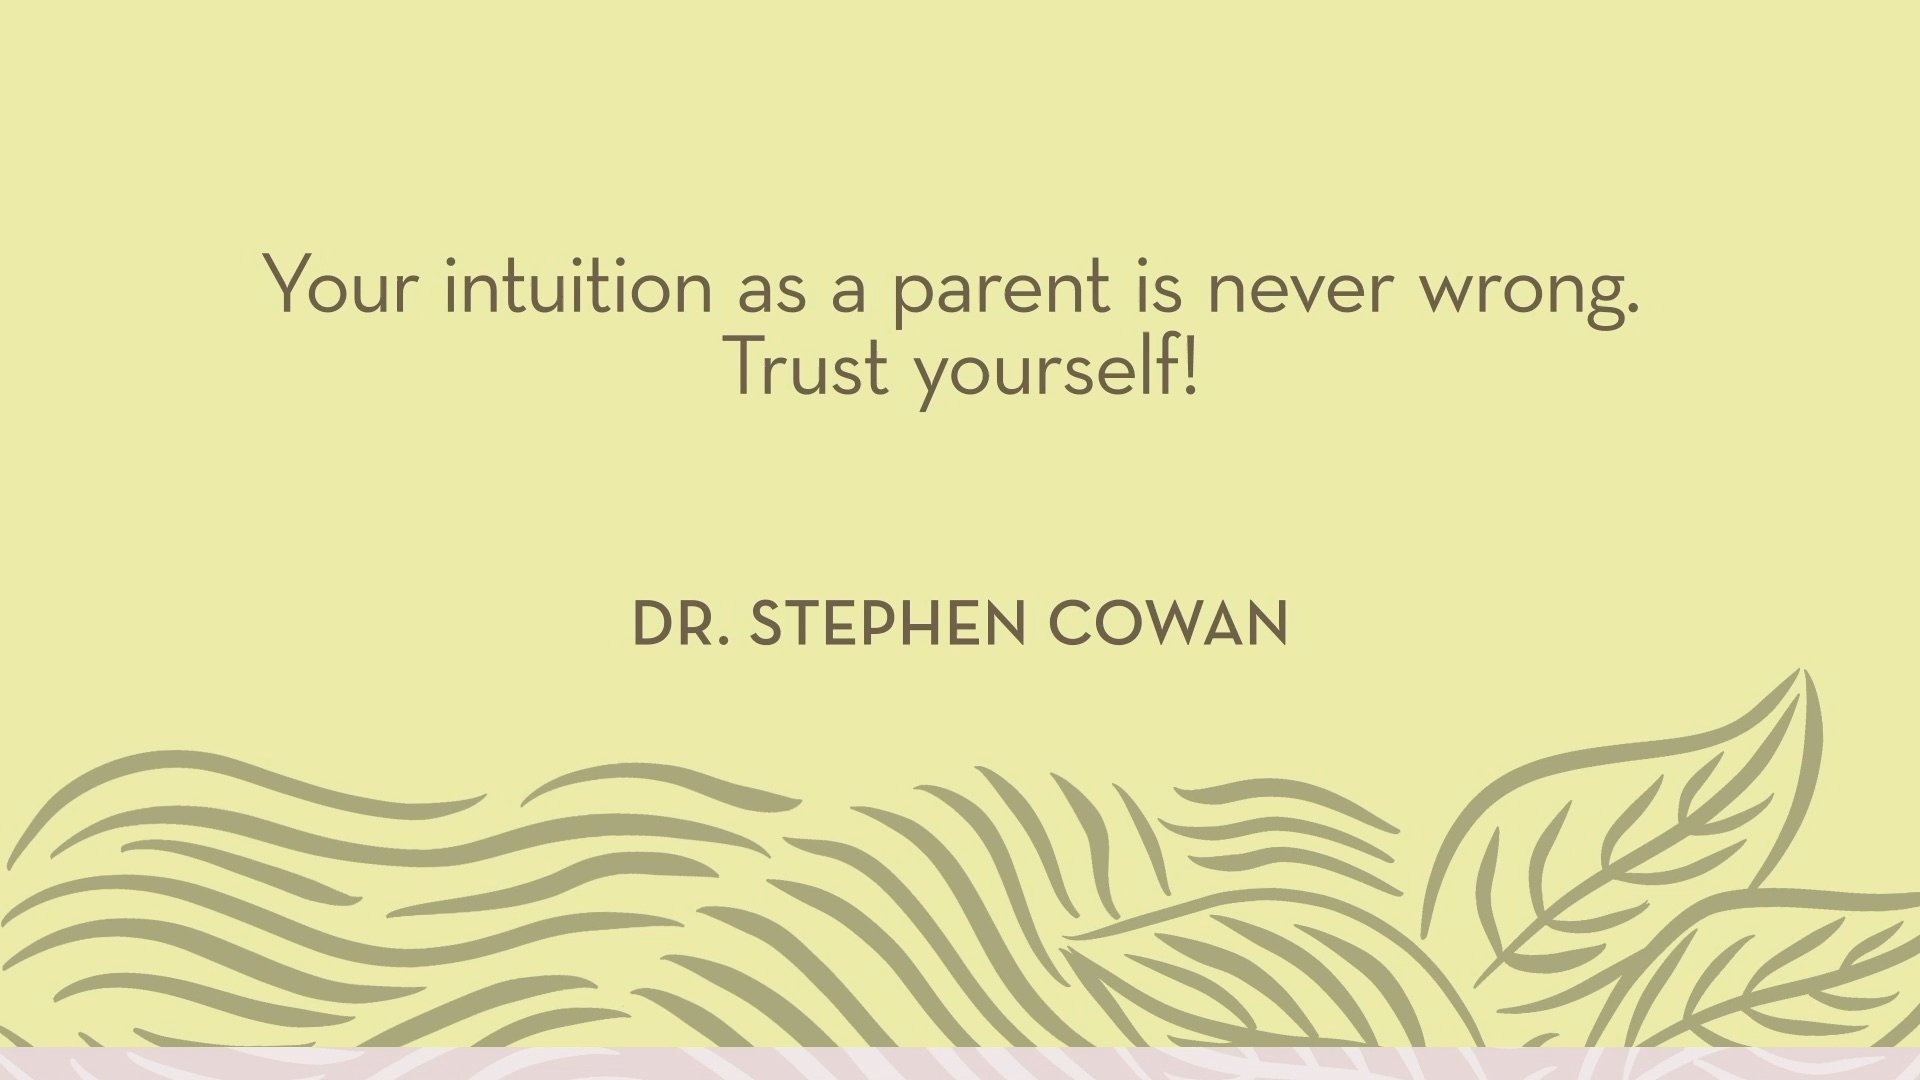 Dr. Cowan | Your intuition as a parent is never wrong. Trust yourself!